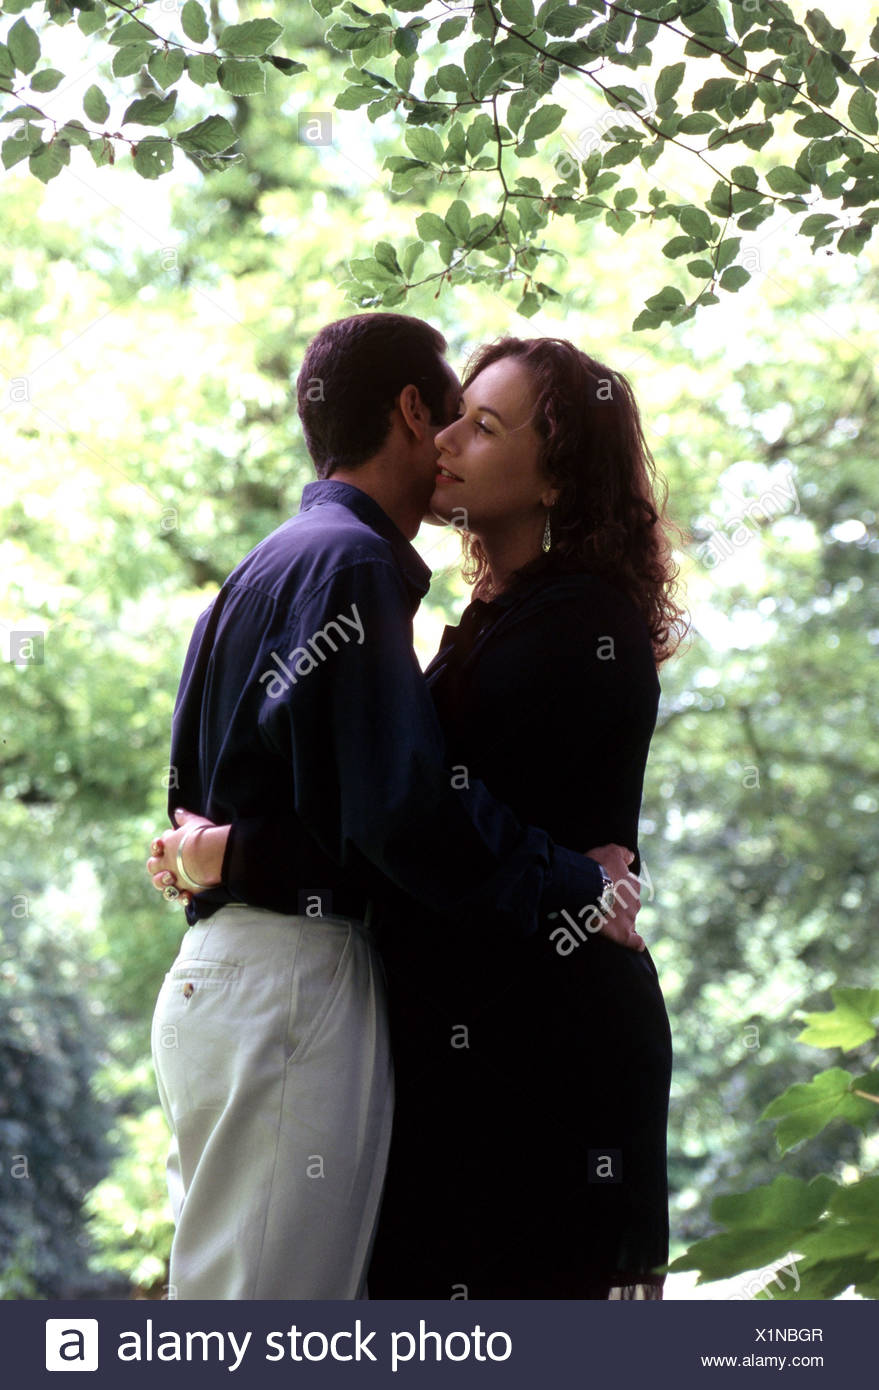 Egyptian man and european woman in love - Stock Image